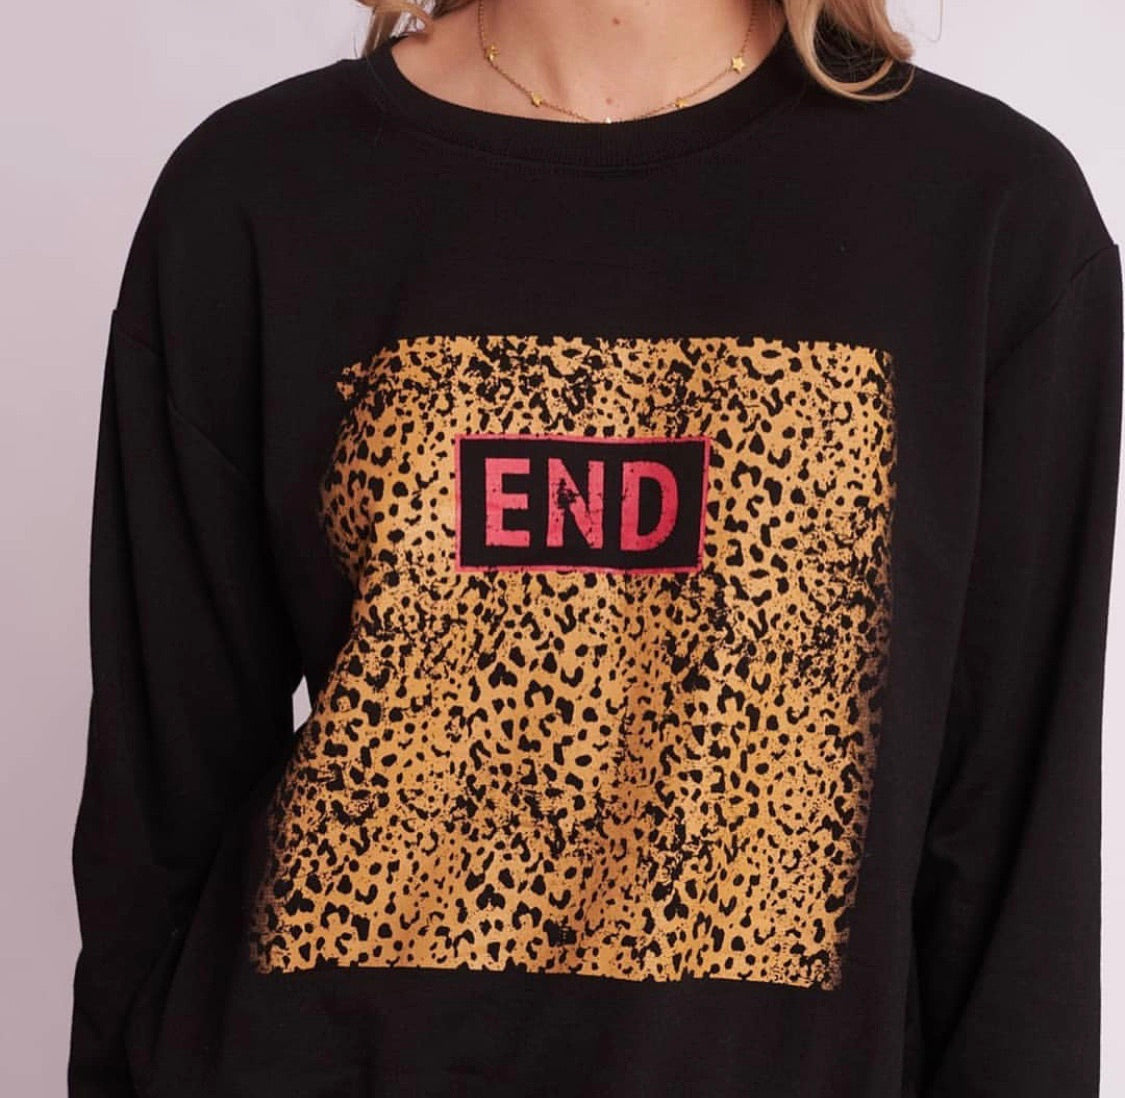 End Sweater - Black/Leopard